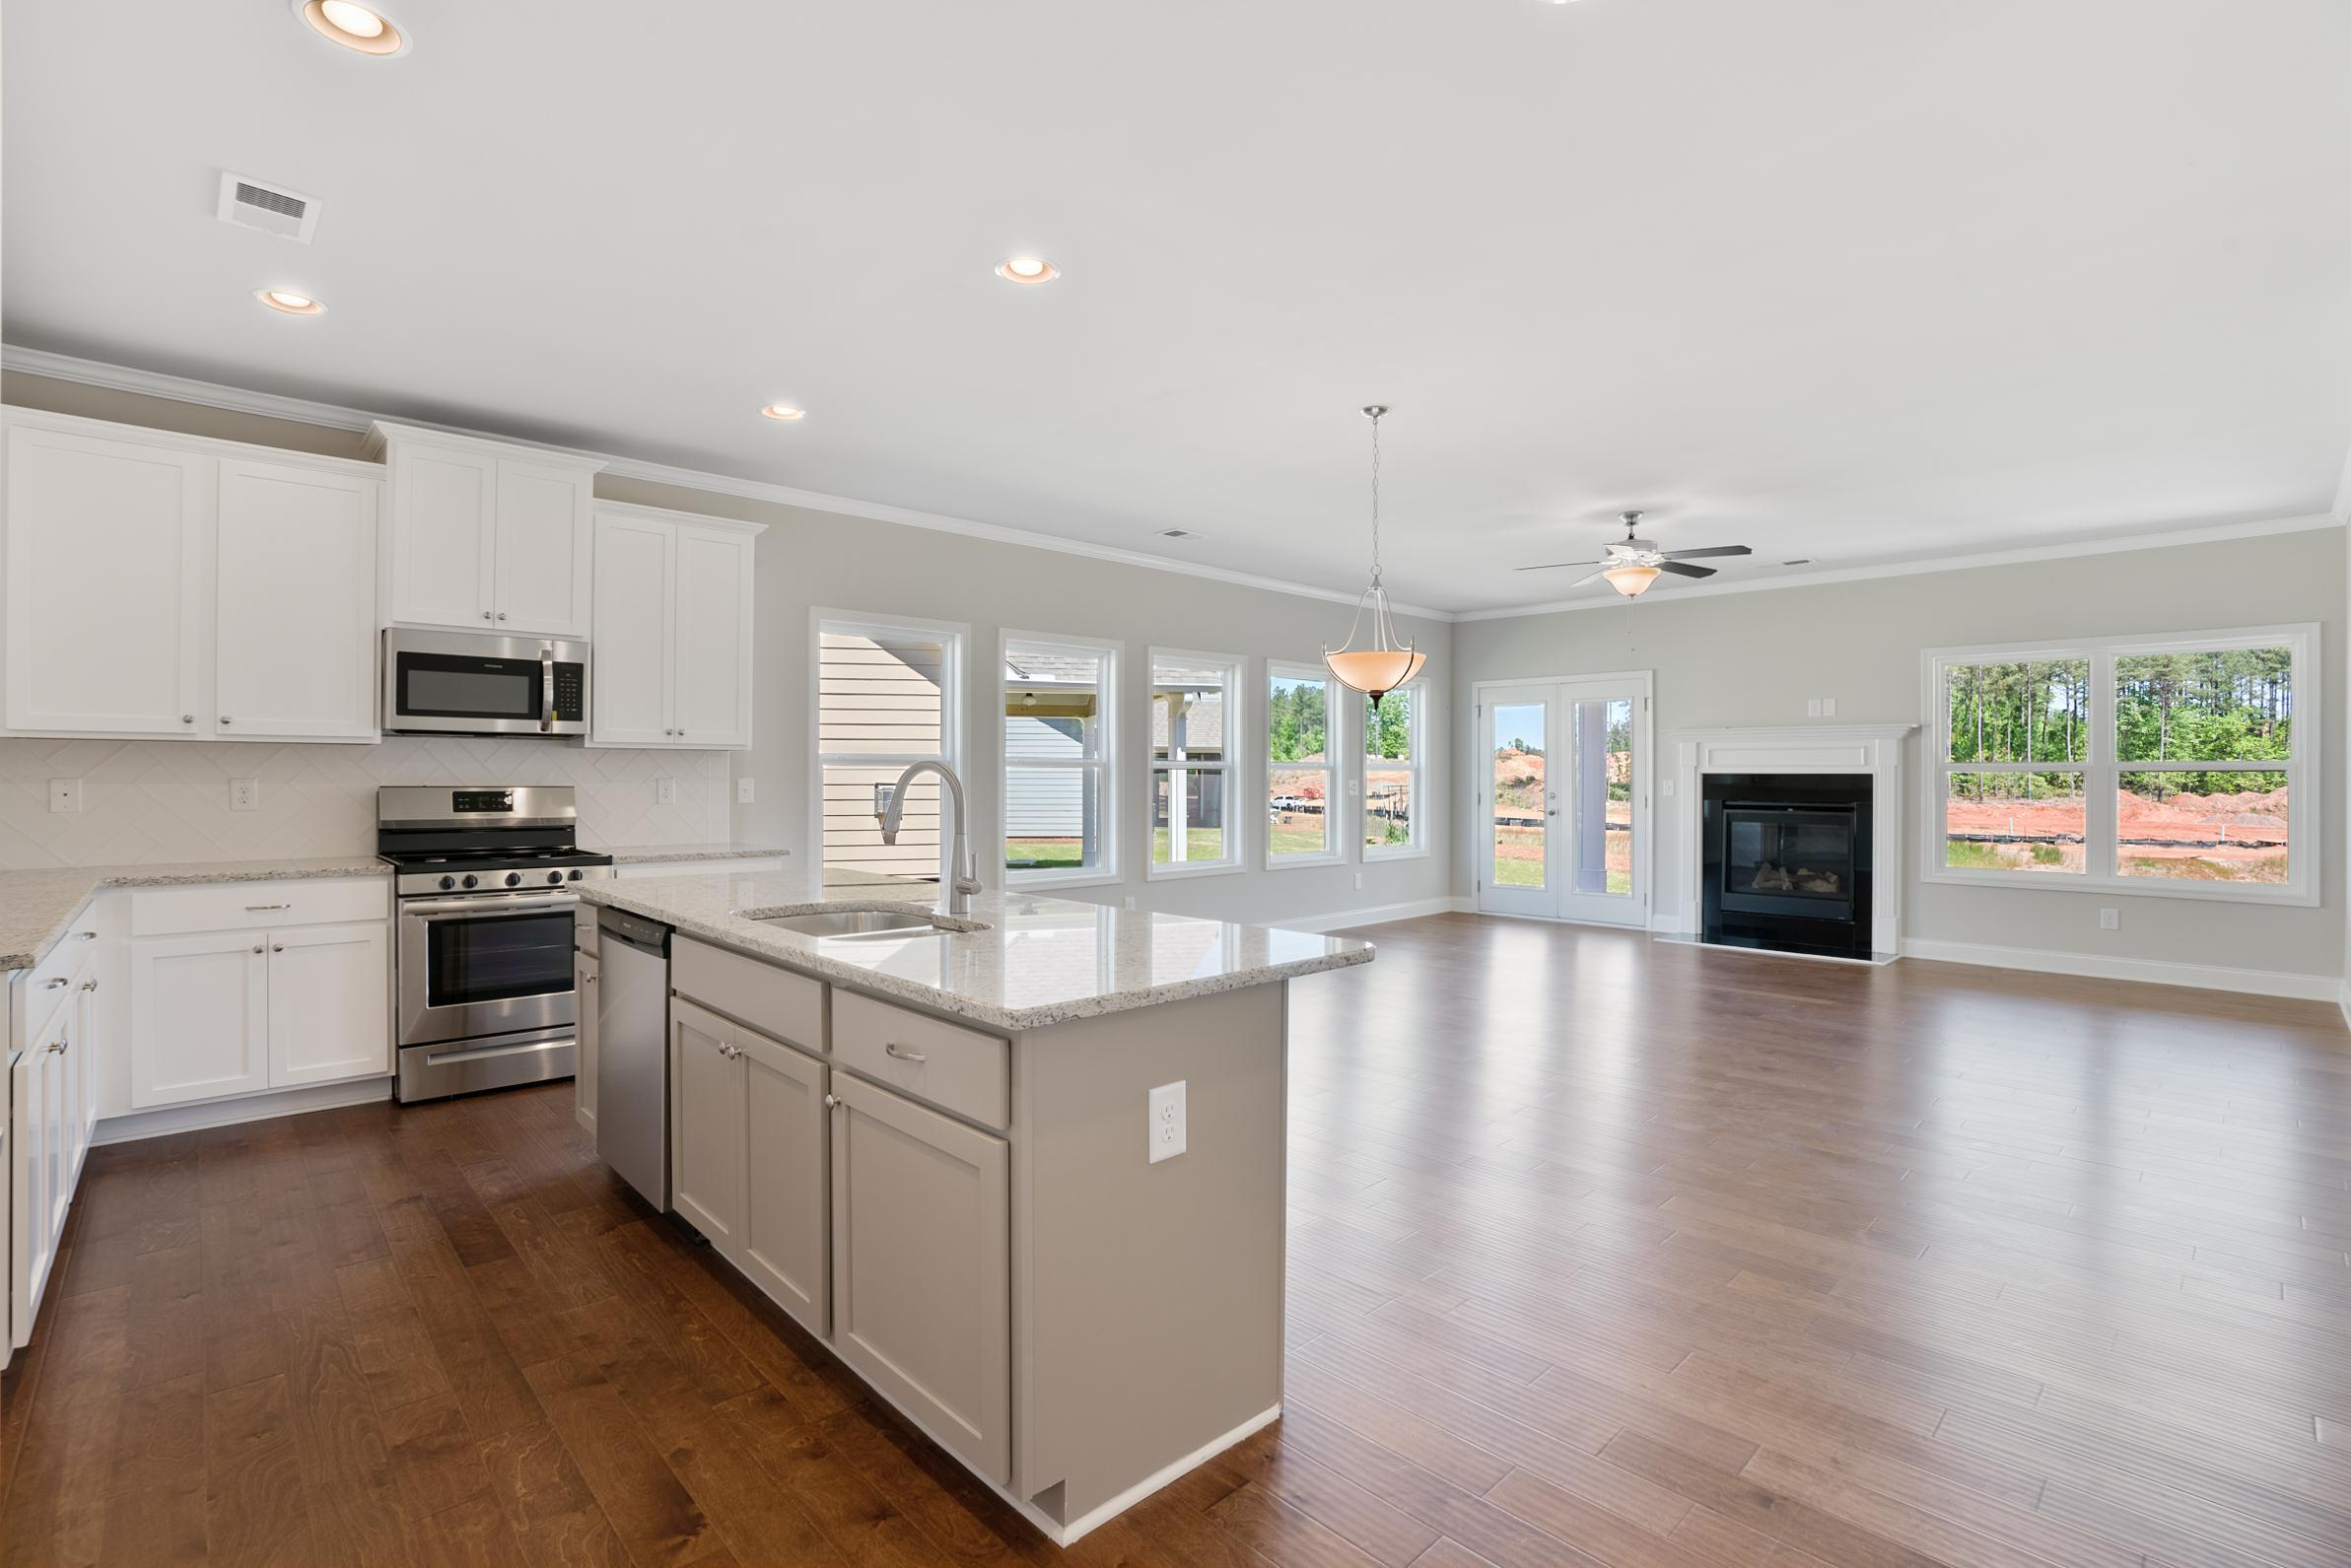 Kitchen featured in the Brookhaven (Active Adult) By Artisan Built Communities in Atlanta, GA